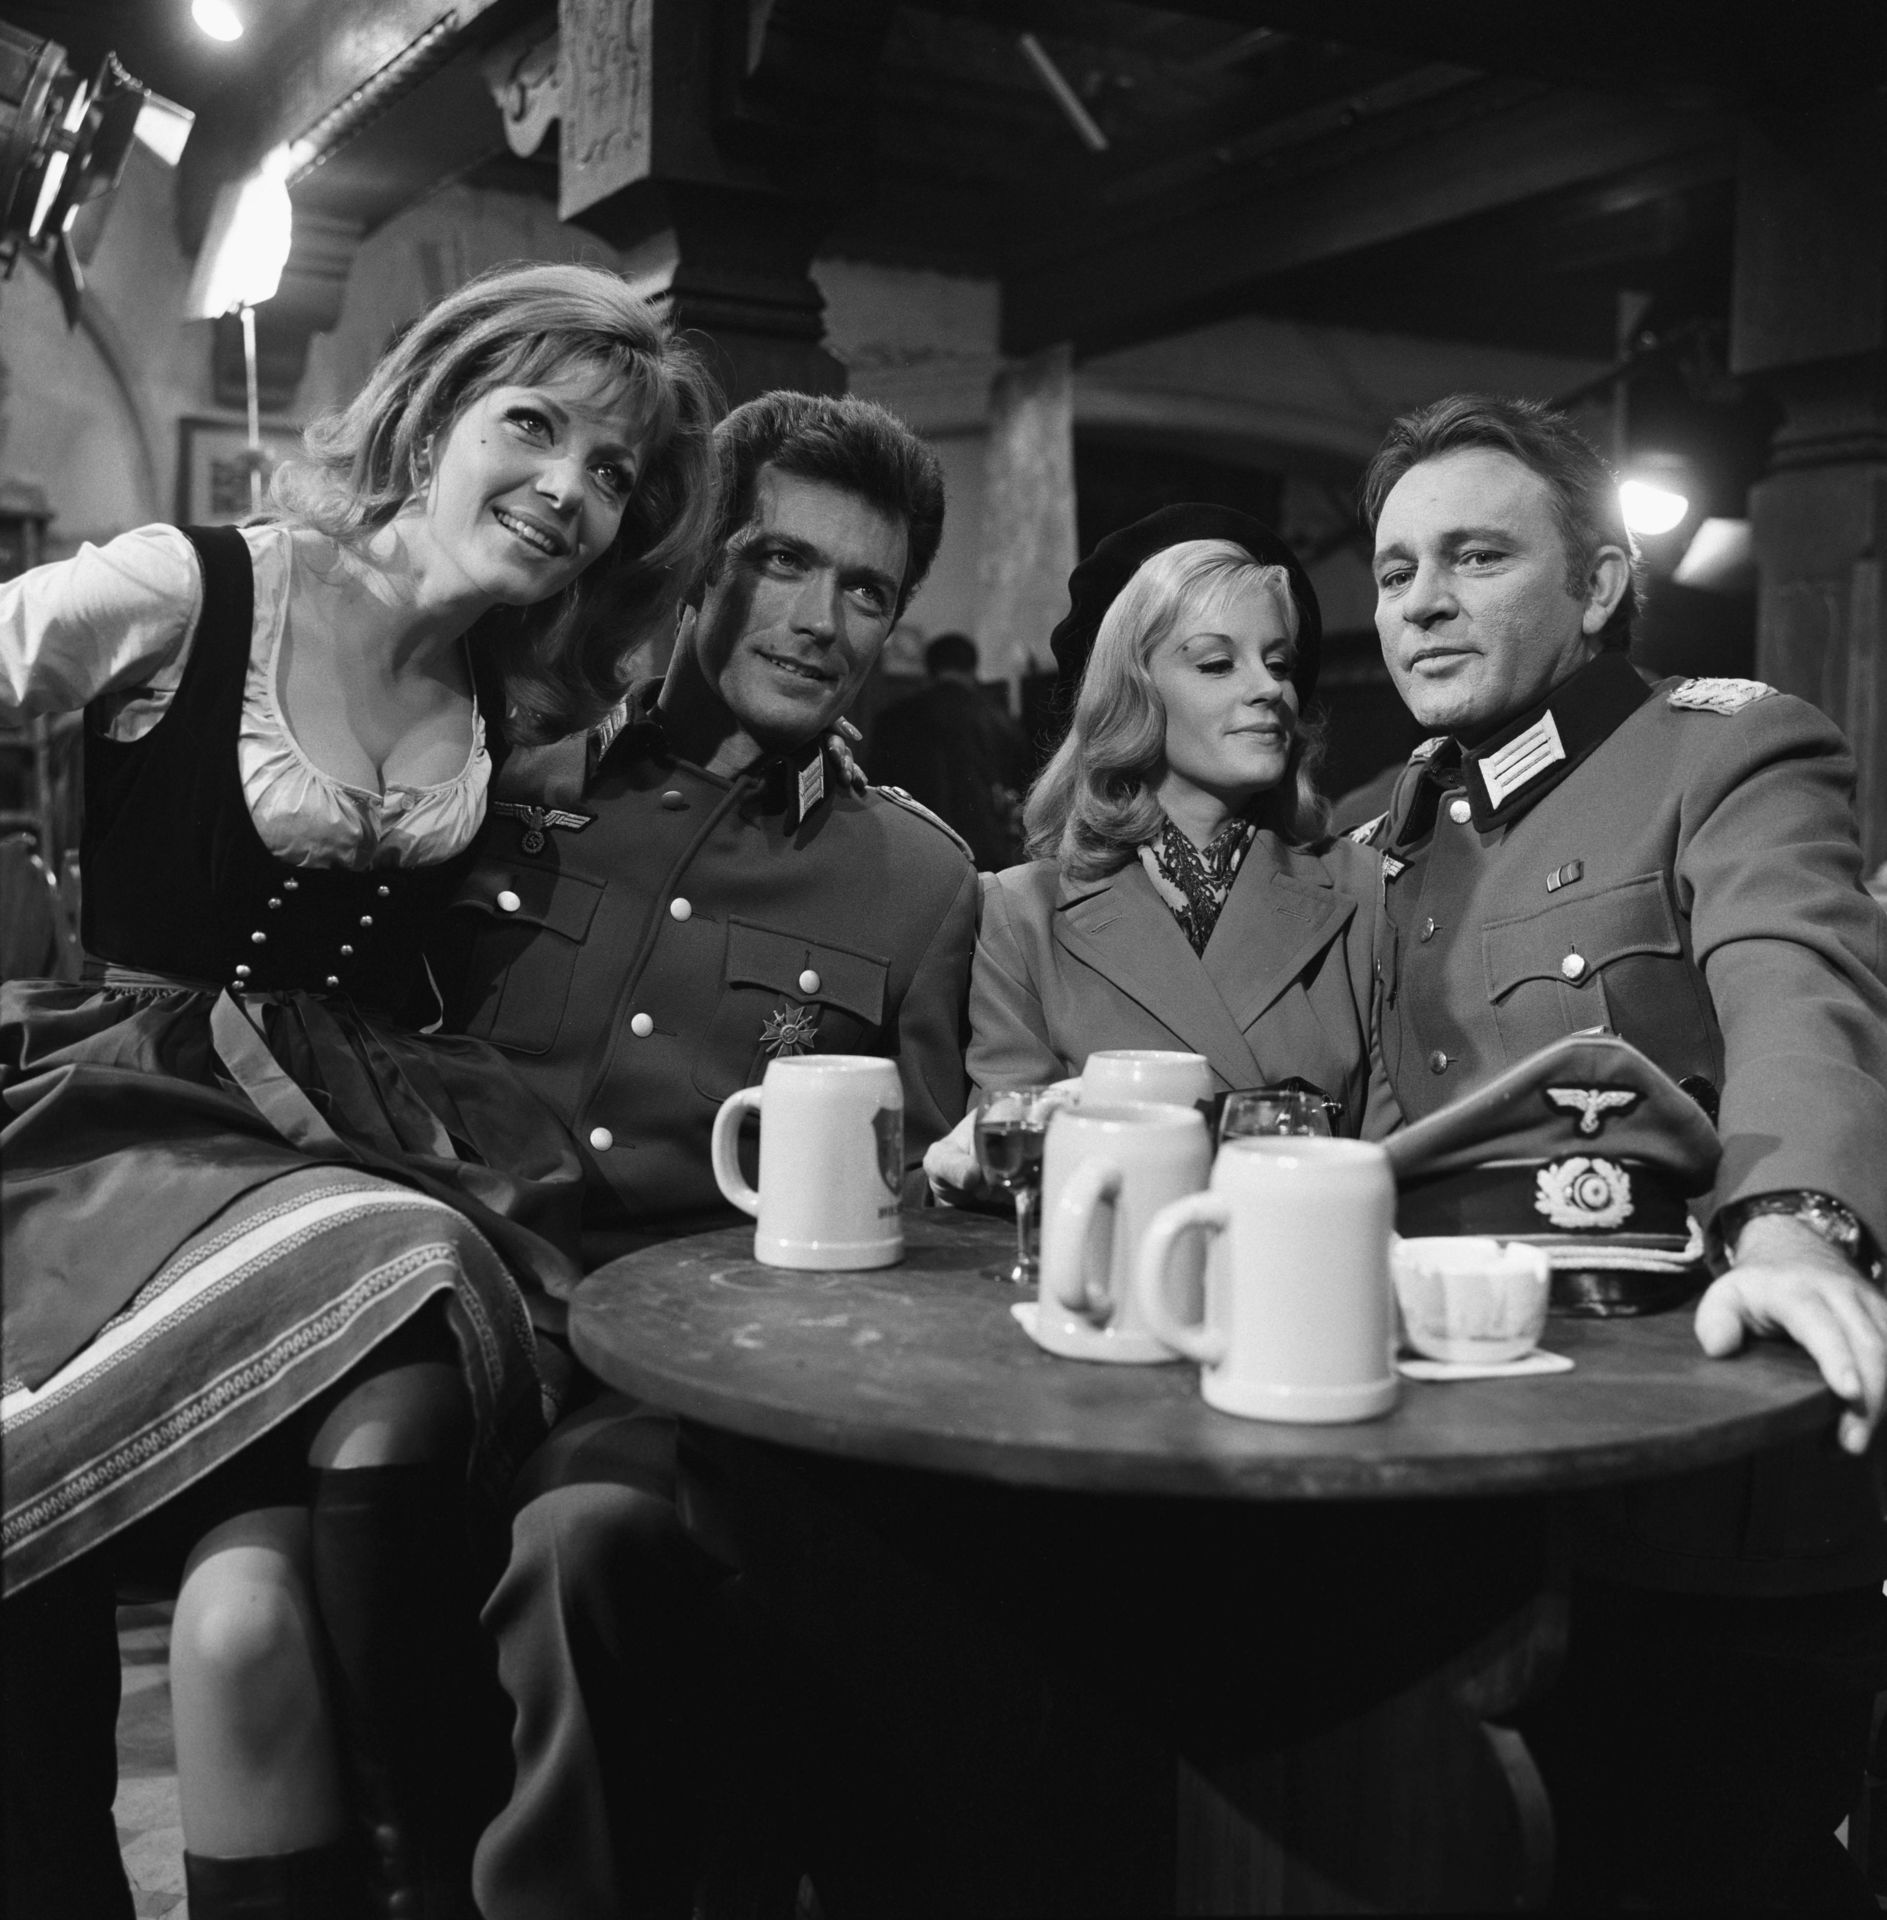 ingrid-pitt-clint-eastwood-mary-ure-rich